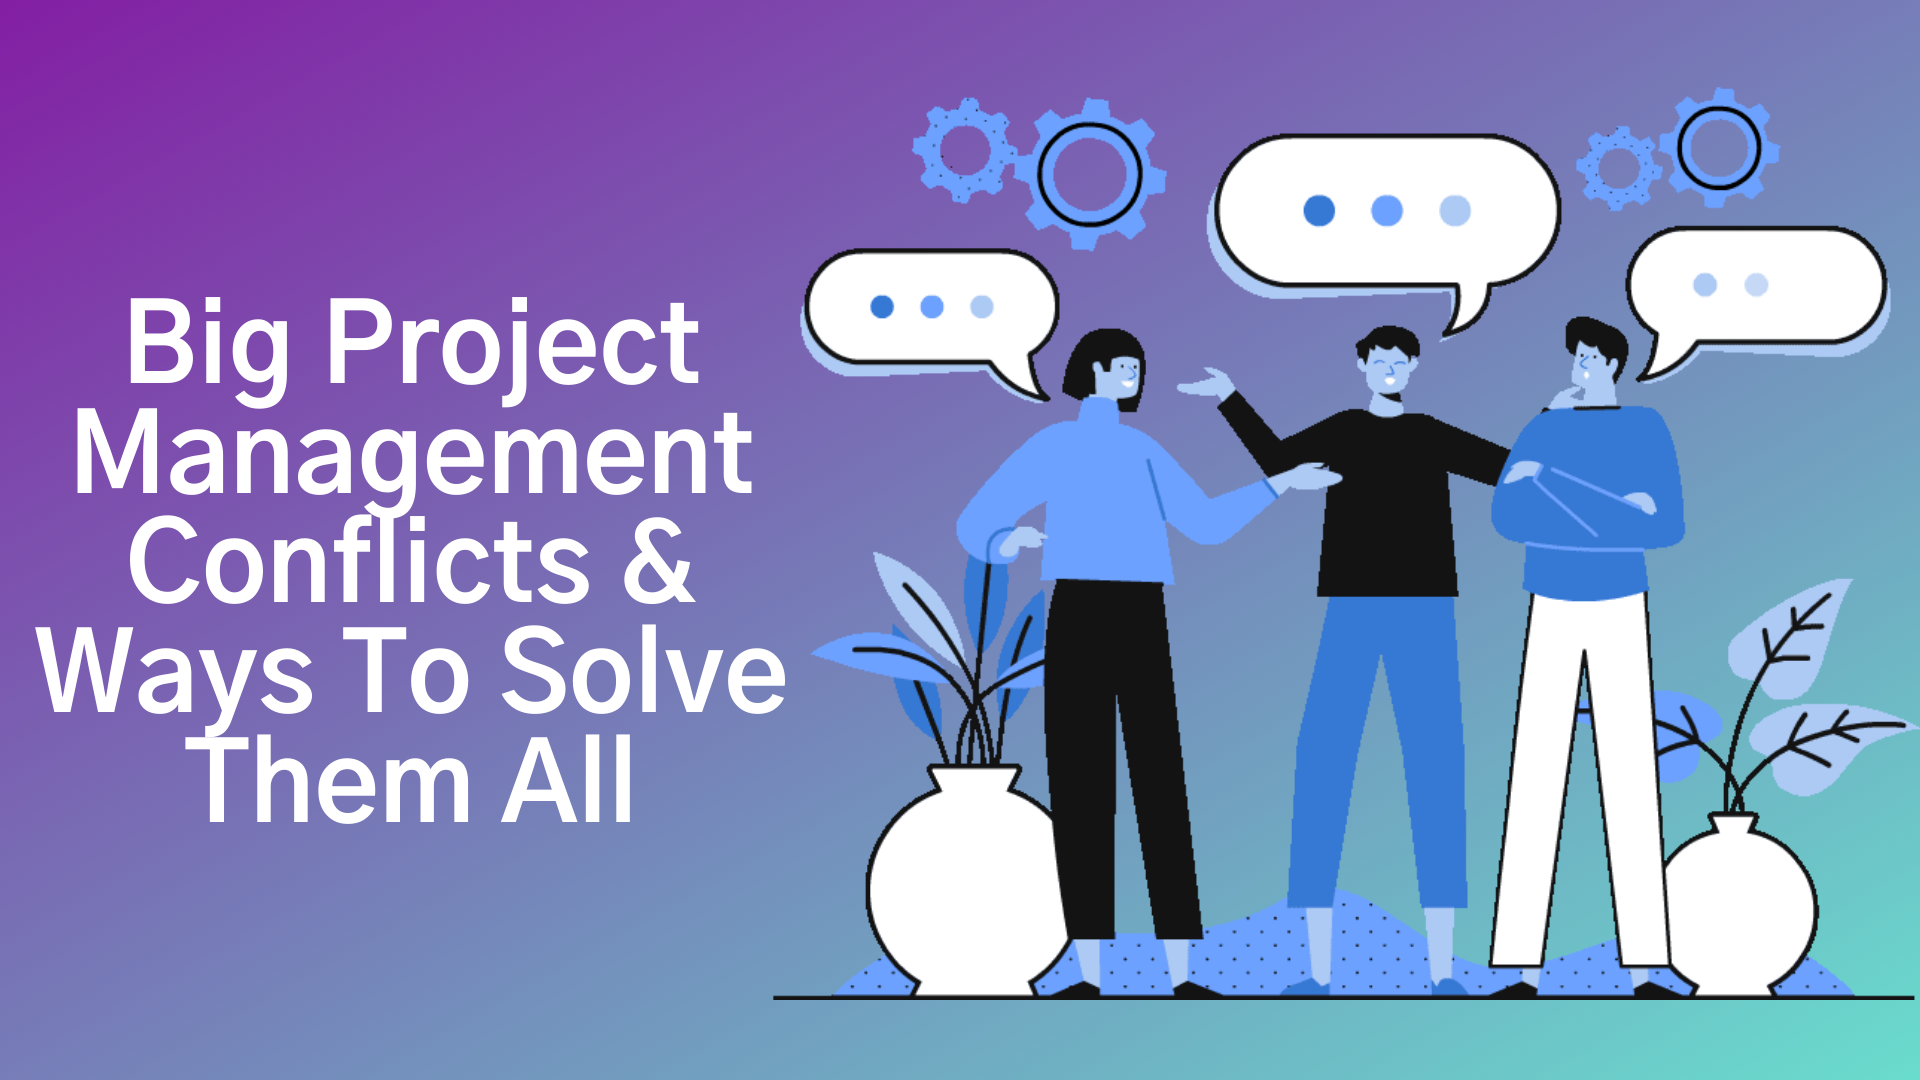 Project Management Conflicts & Ways To Solve Them All